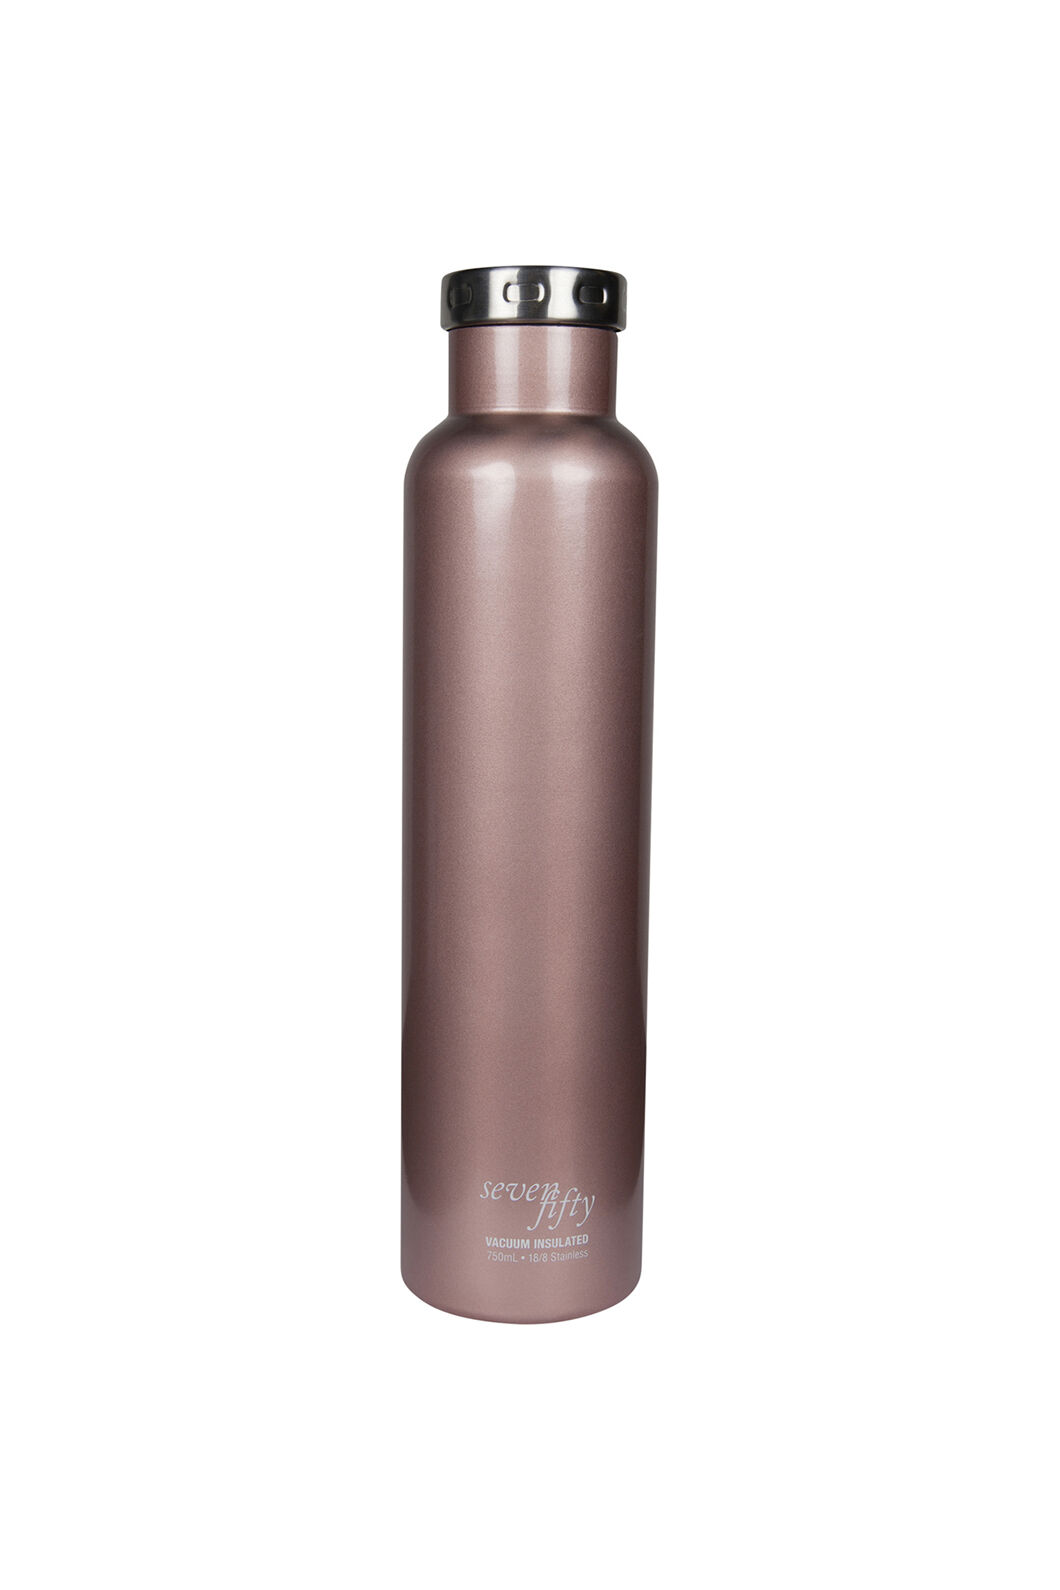 SEVEN/FIFTY 750mL Wine Growler, Rose Gold, hi-res